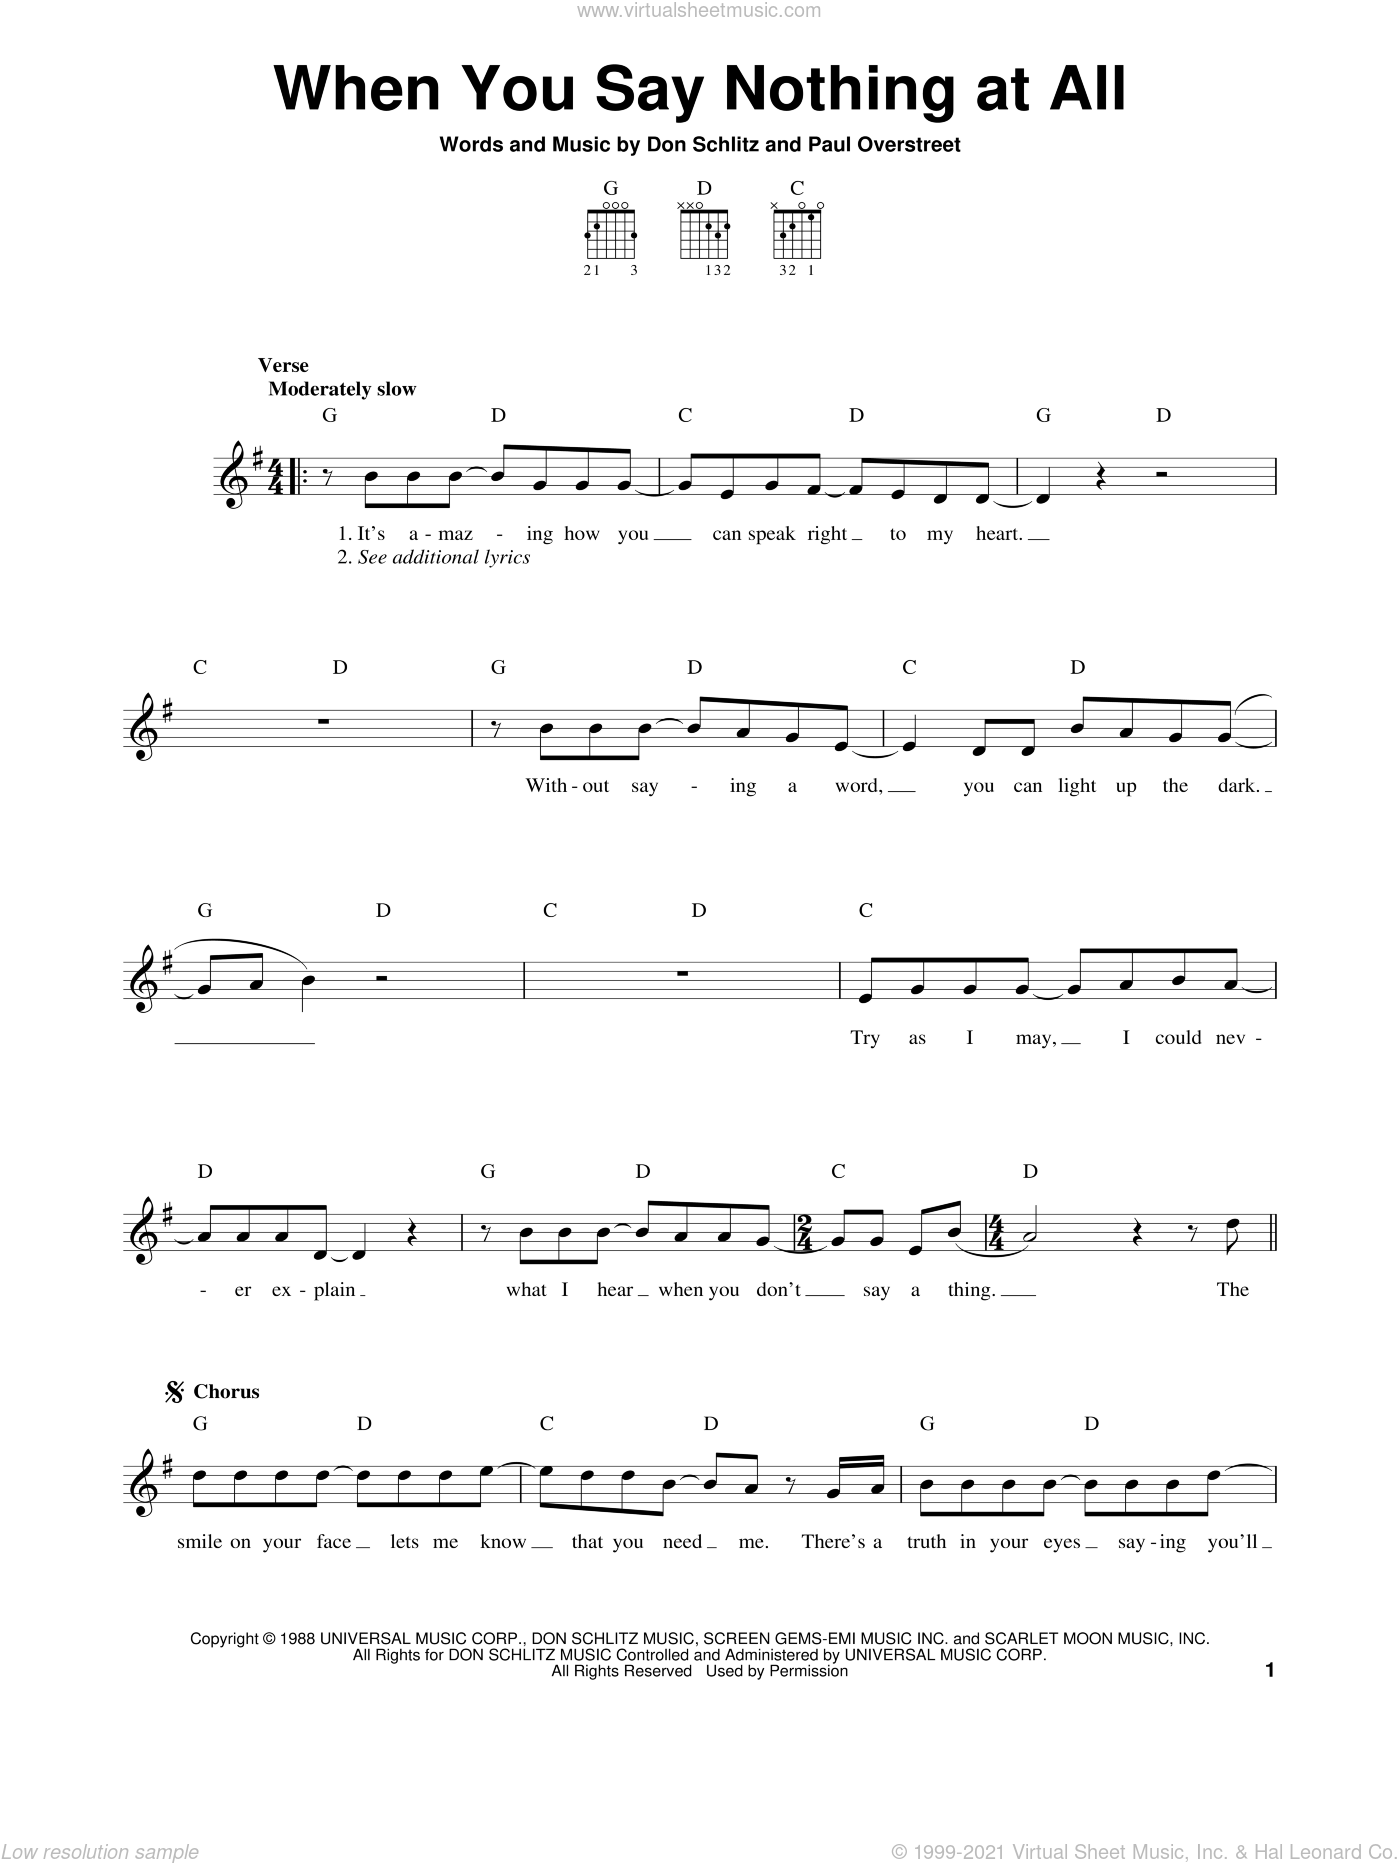 When You Say Nothing At All sheet music for guitar solo (chords) by Alison Krauss, Alison Krauss & Union Station, Keith Whitley, Don Schlitz and Paul Overstreet, easy guitar (chords). Score Image Preview.